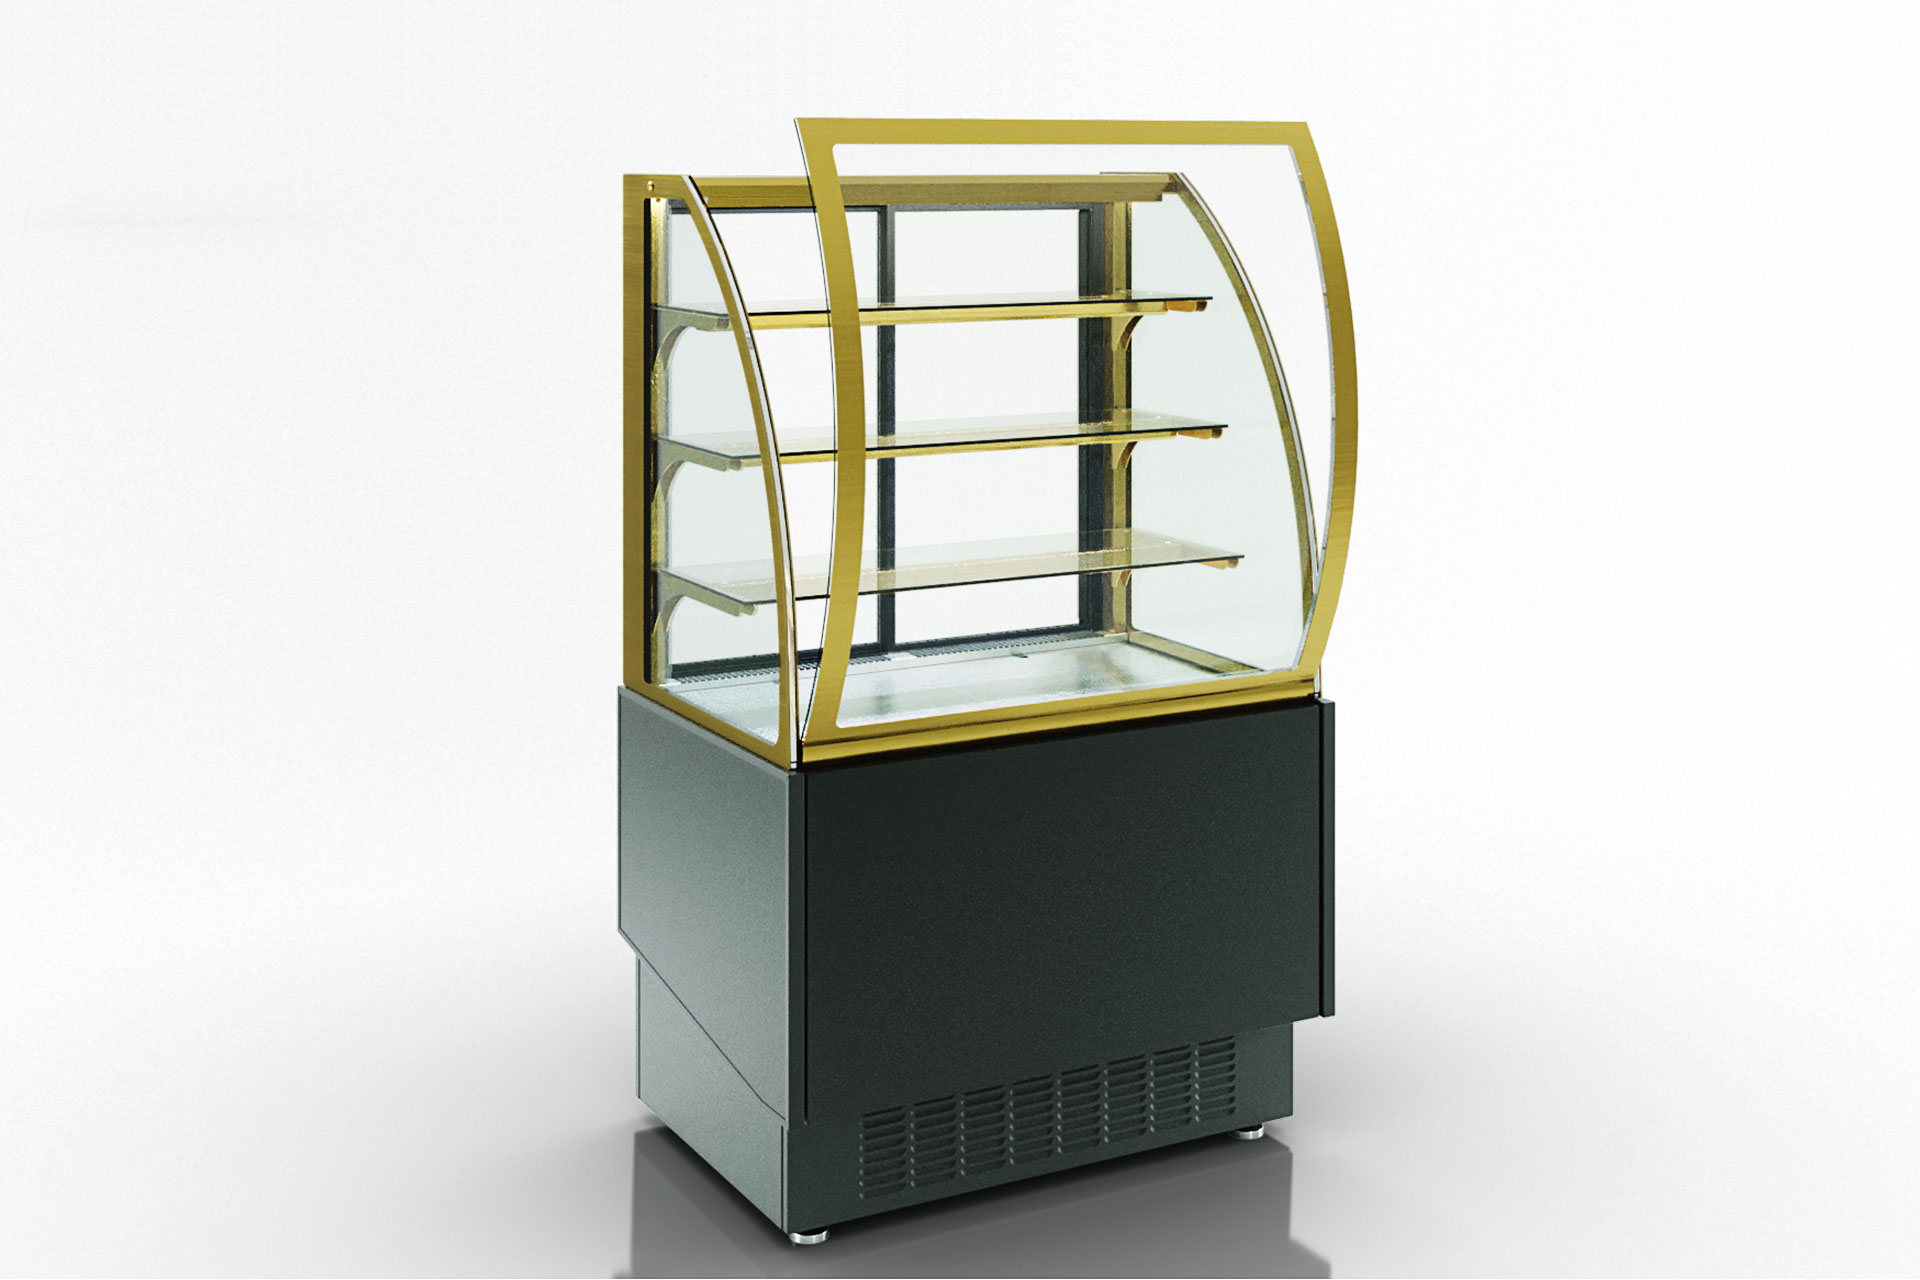 Confectionery counter Dakota snack AG 080 patisserie OS 160-DBA